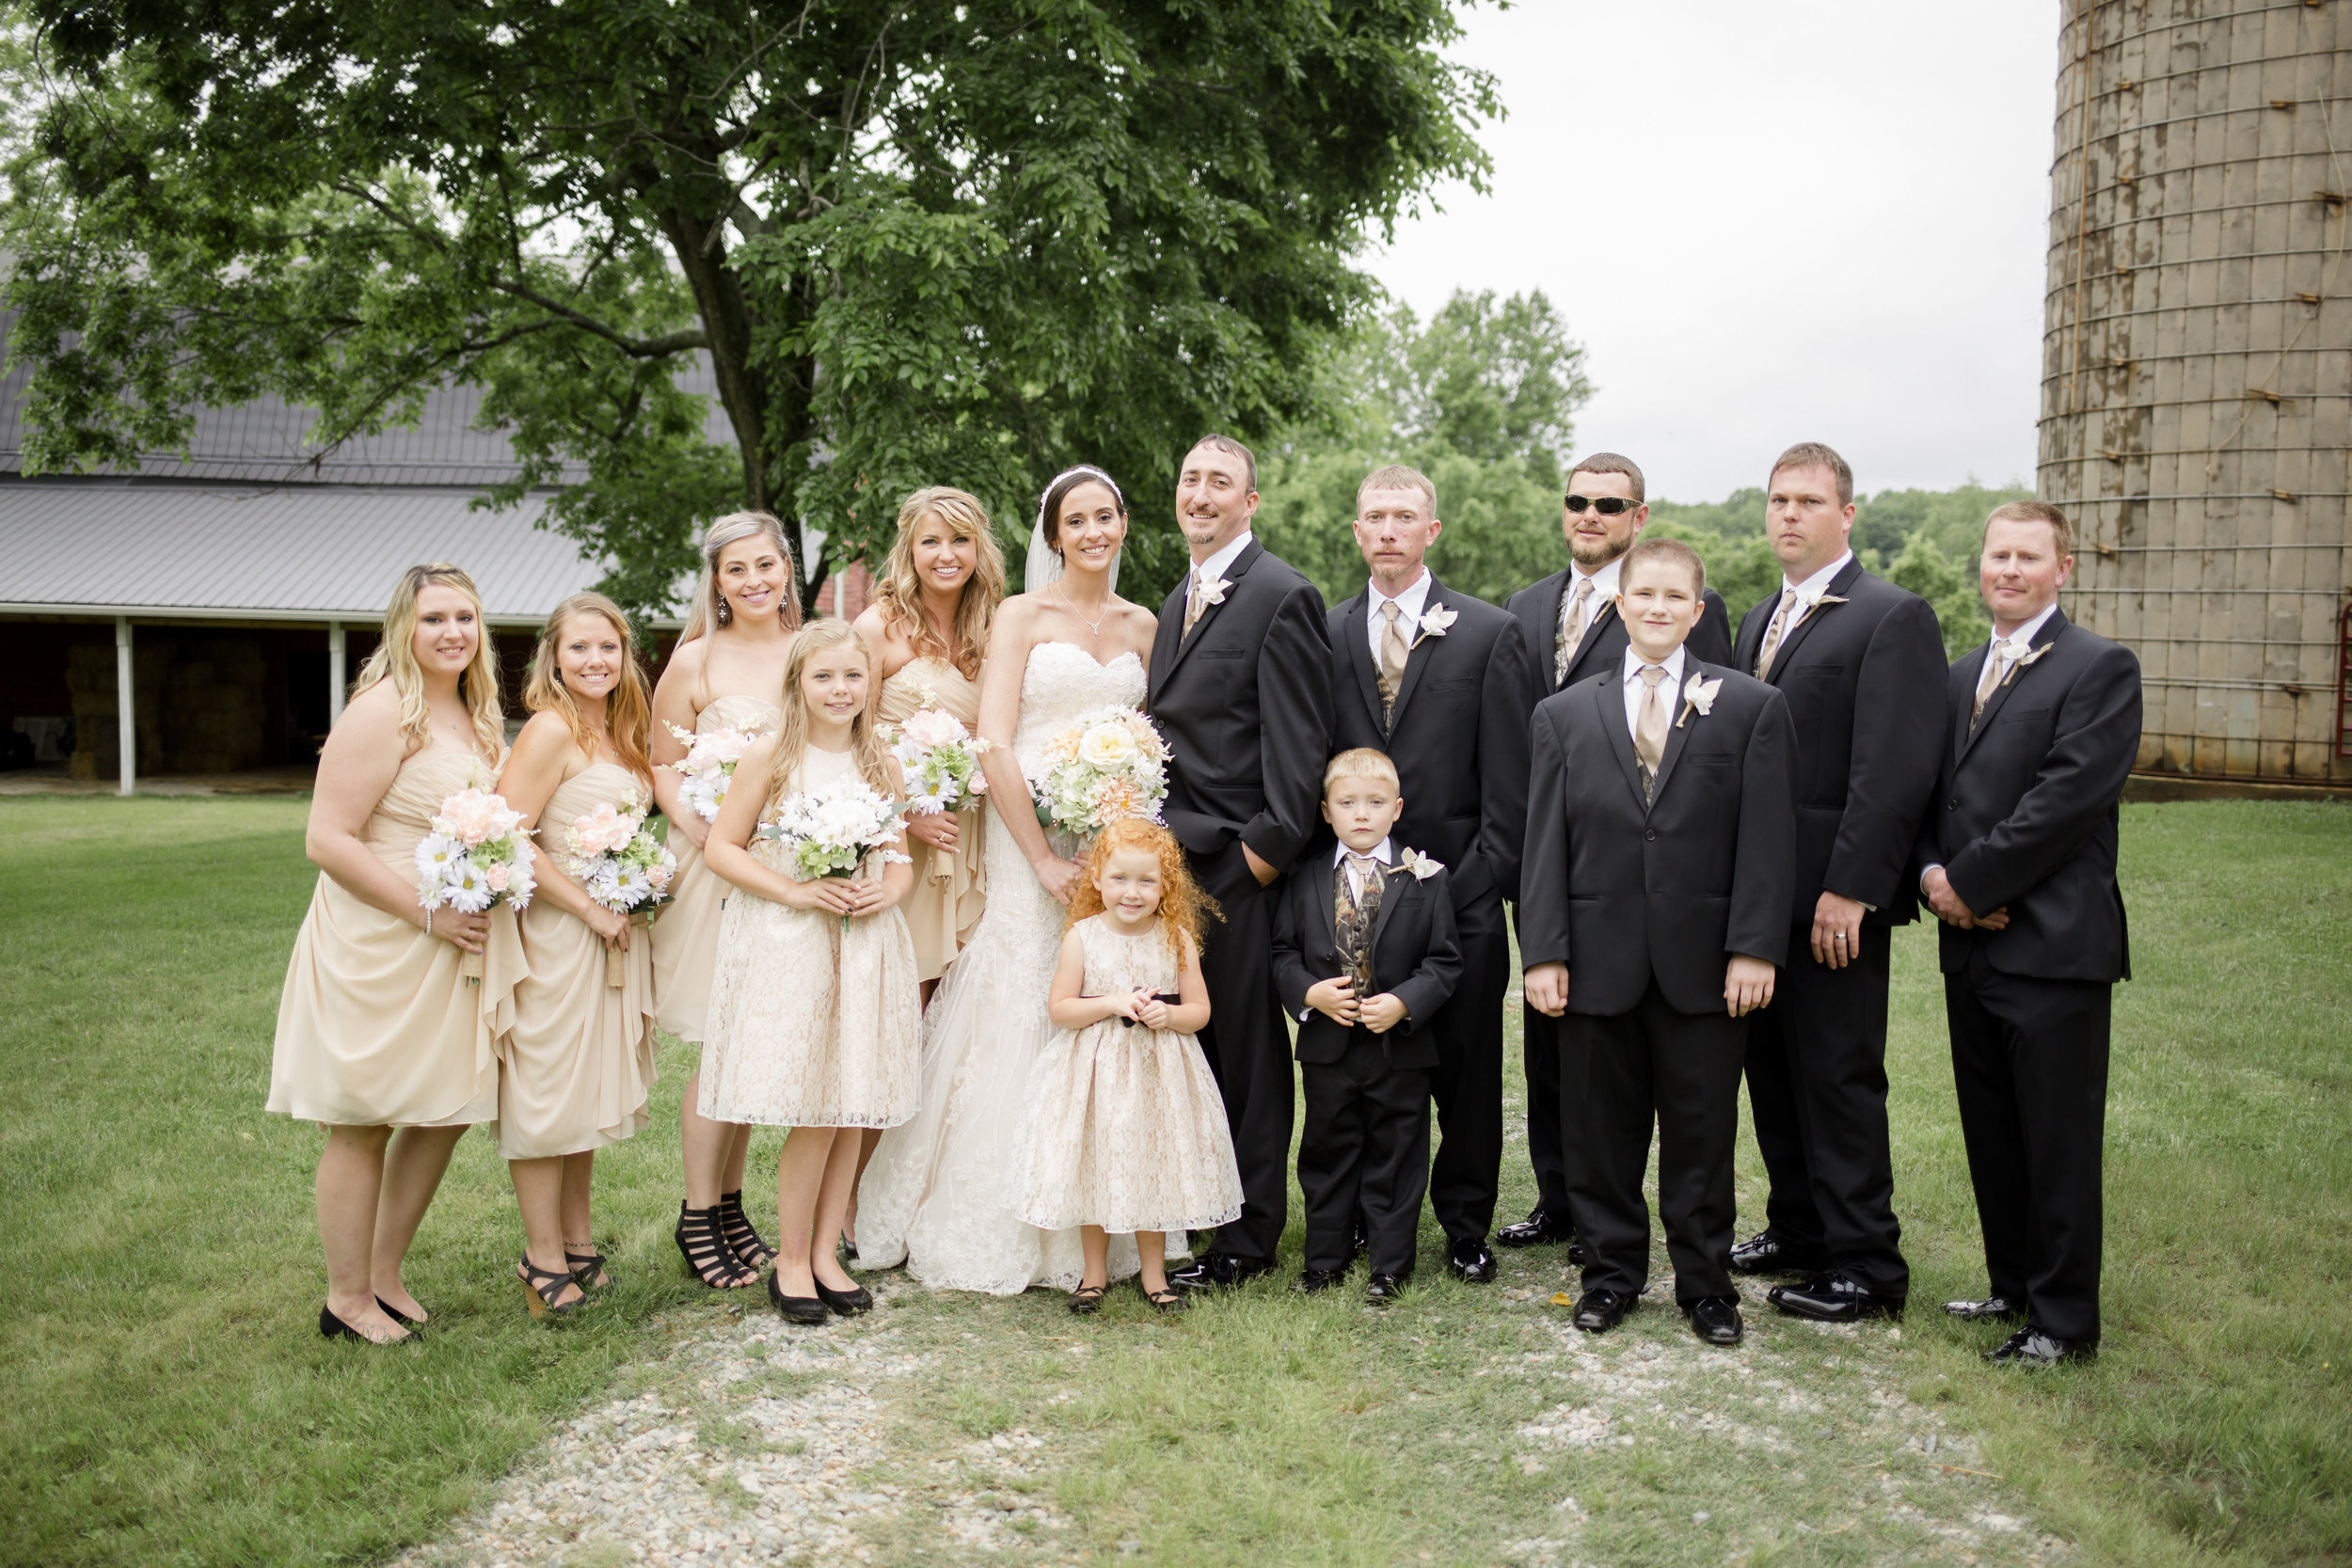 rebeccawed-Group pictures-0126.jpg